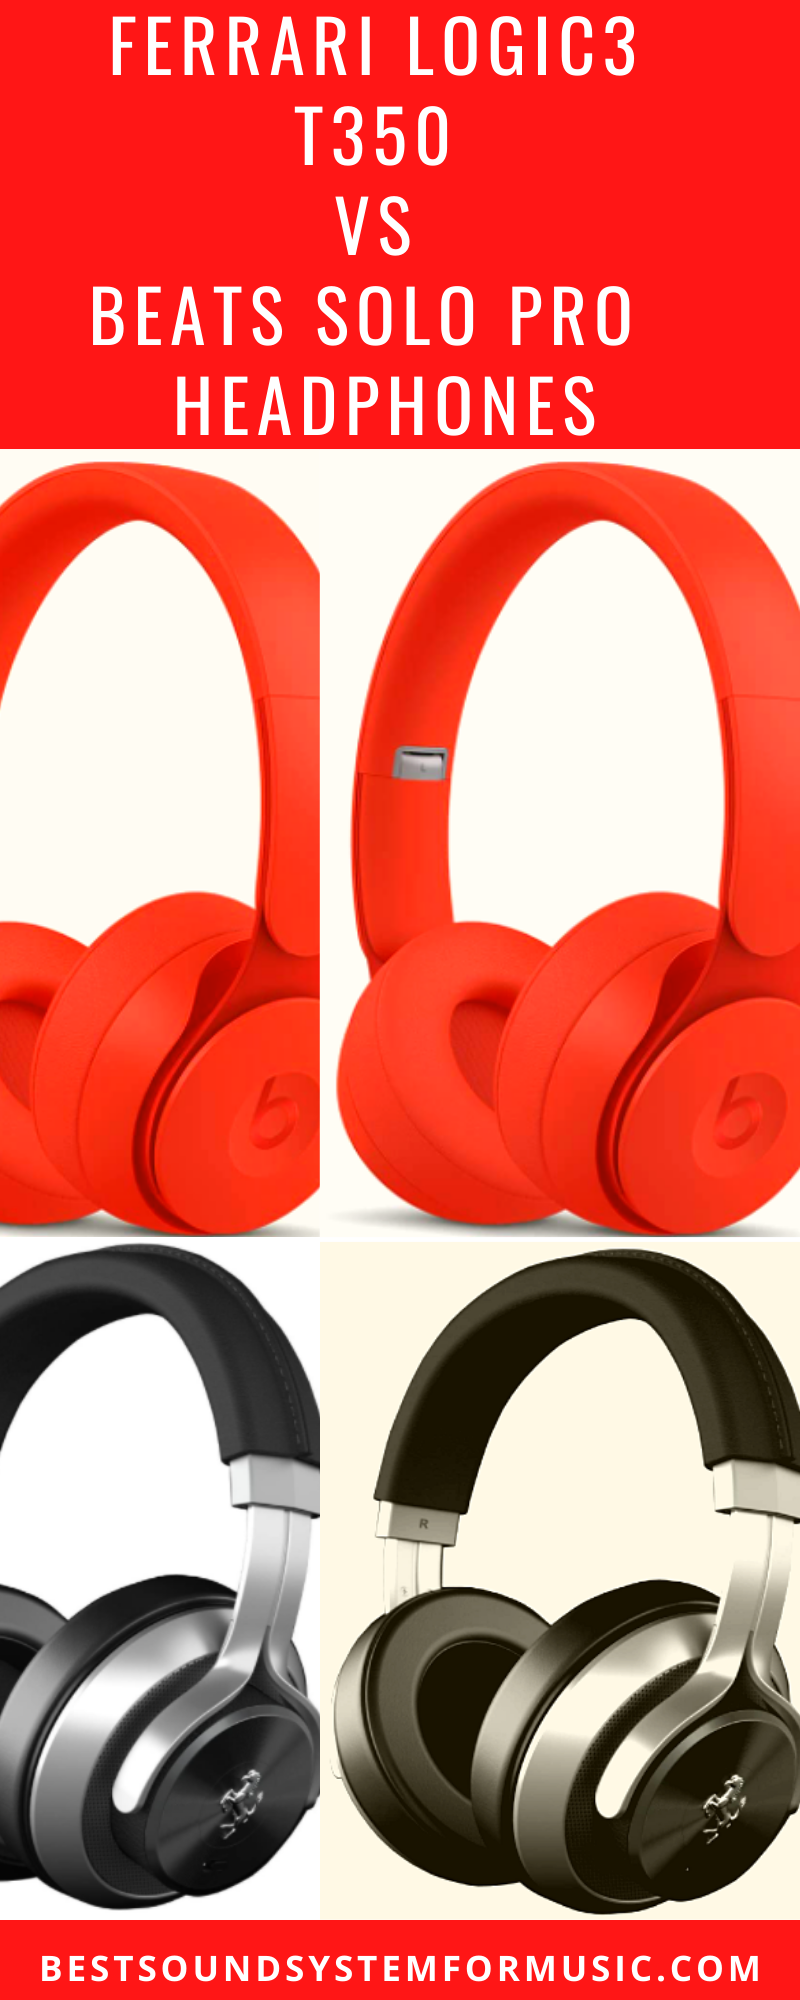 Ferrari Logic3 Vs Beats Headphones Review